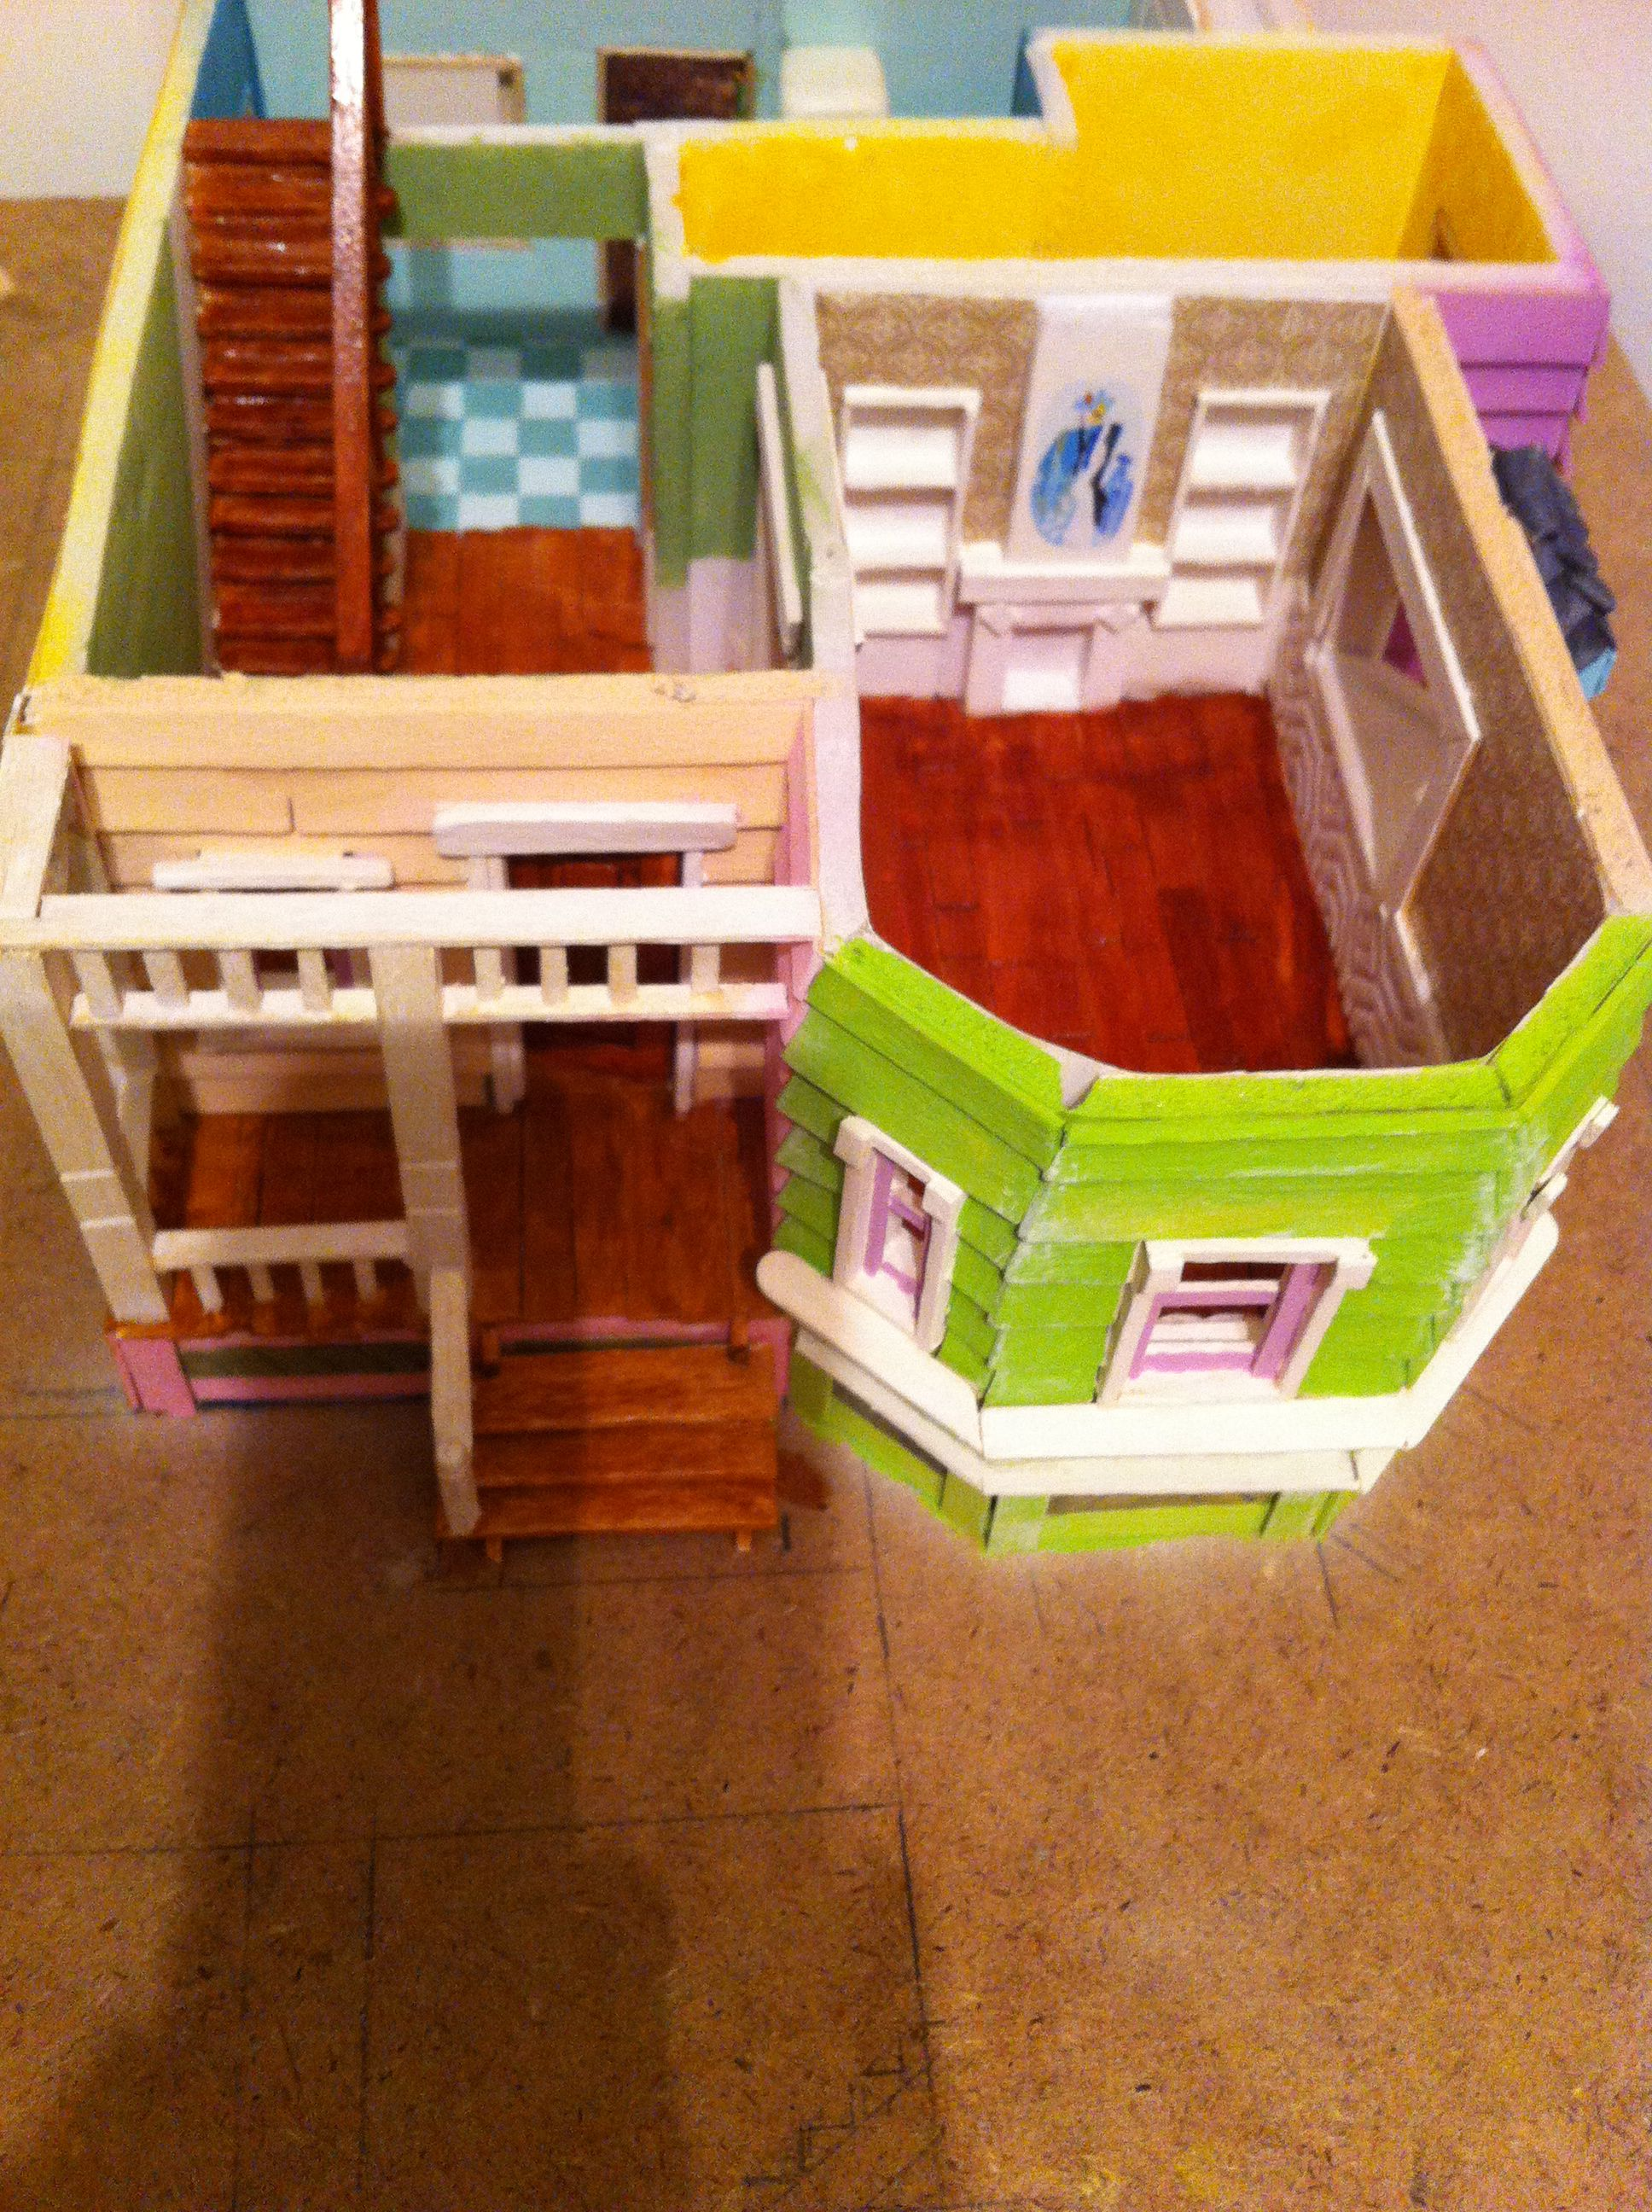 Maqueta up hobbys proyecto house up pixar disney pinterest - Maqueta casa up ...